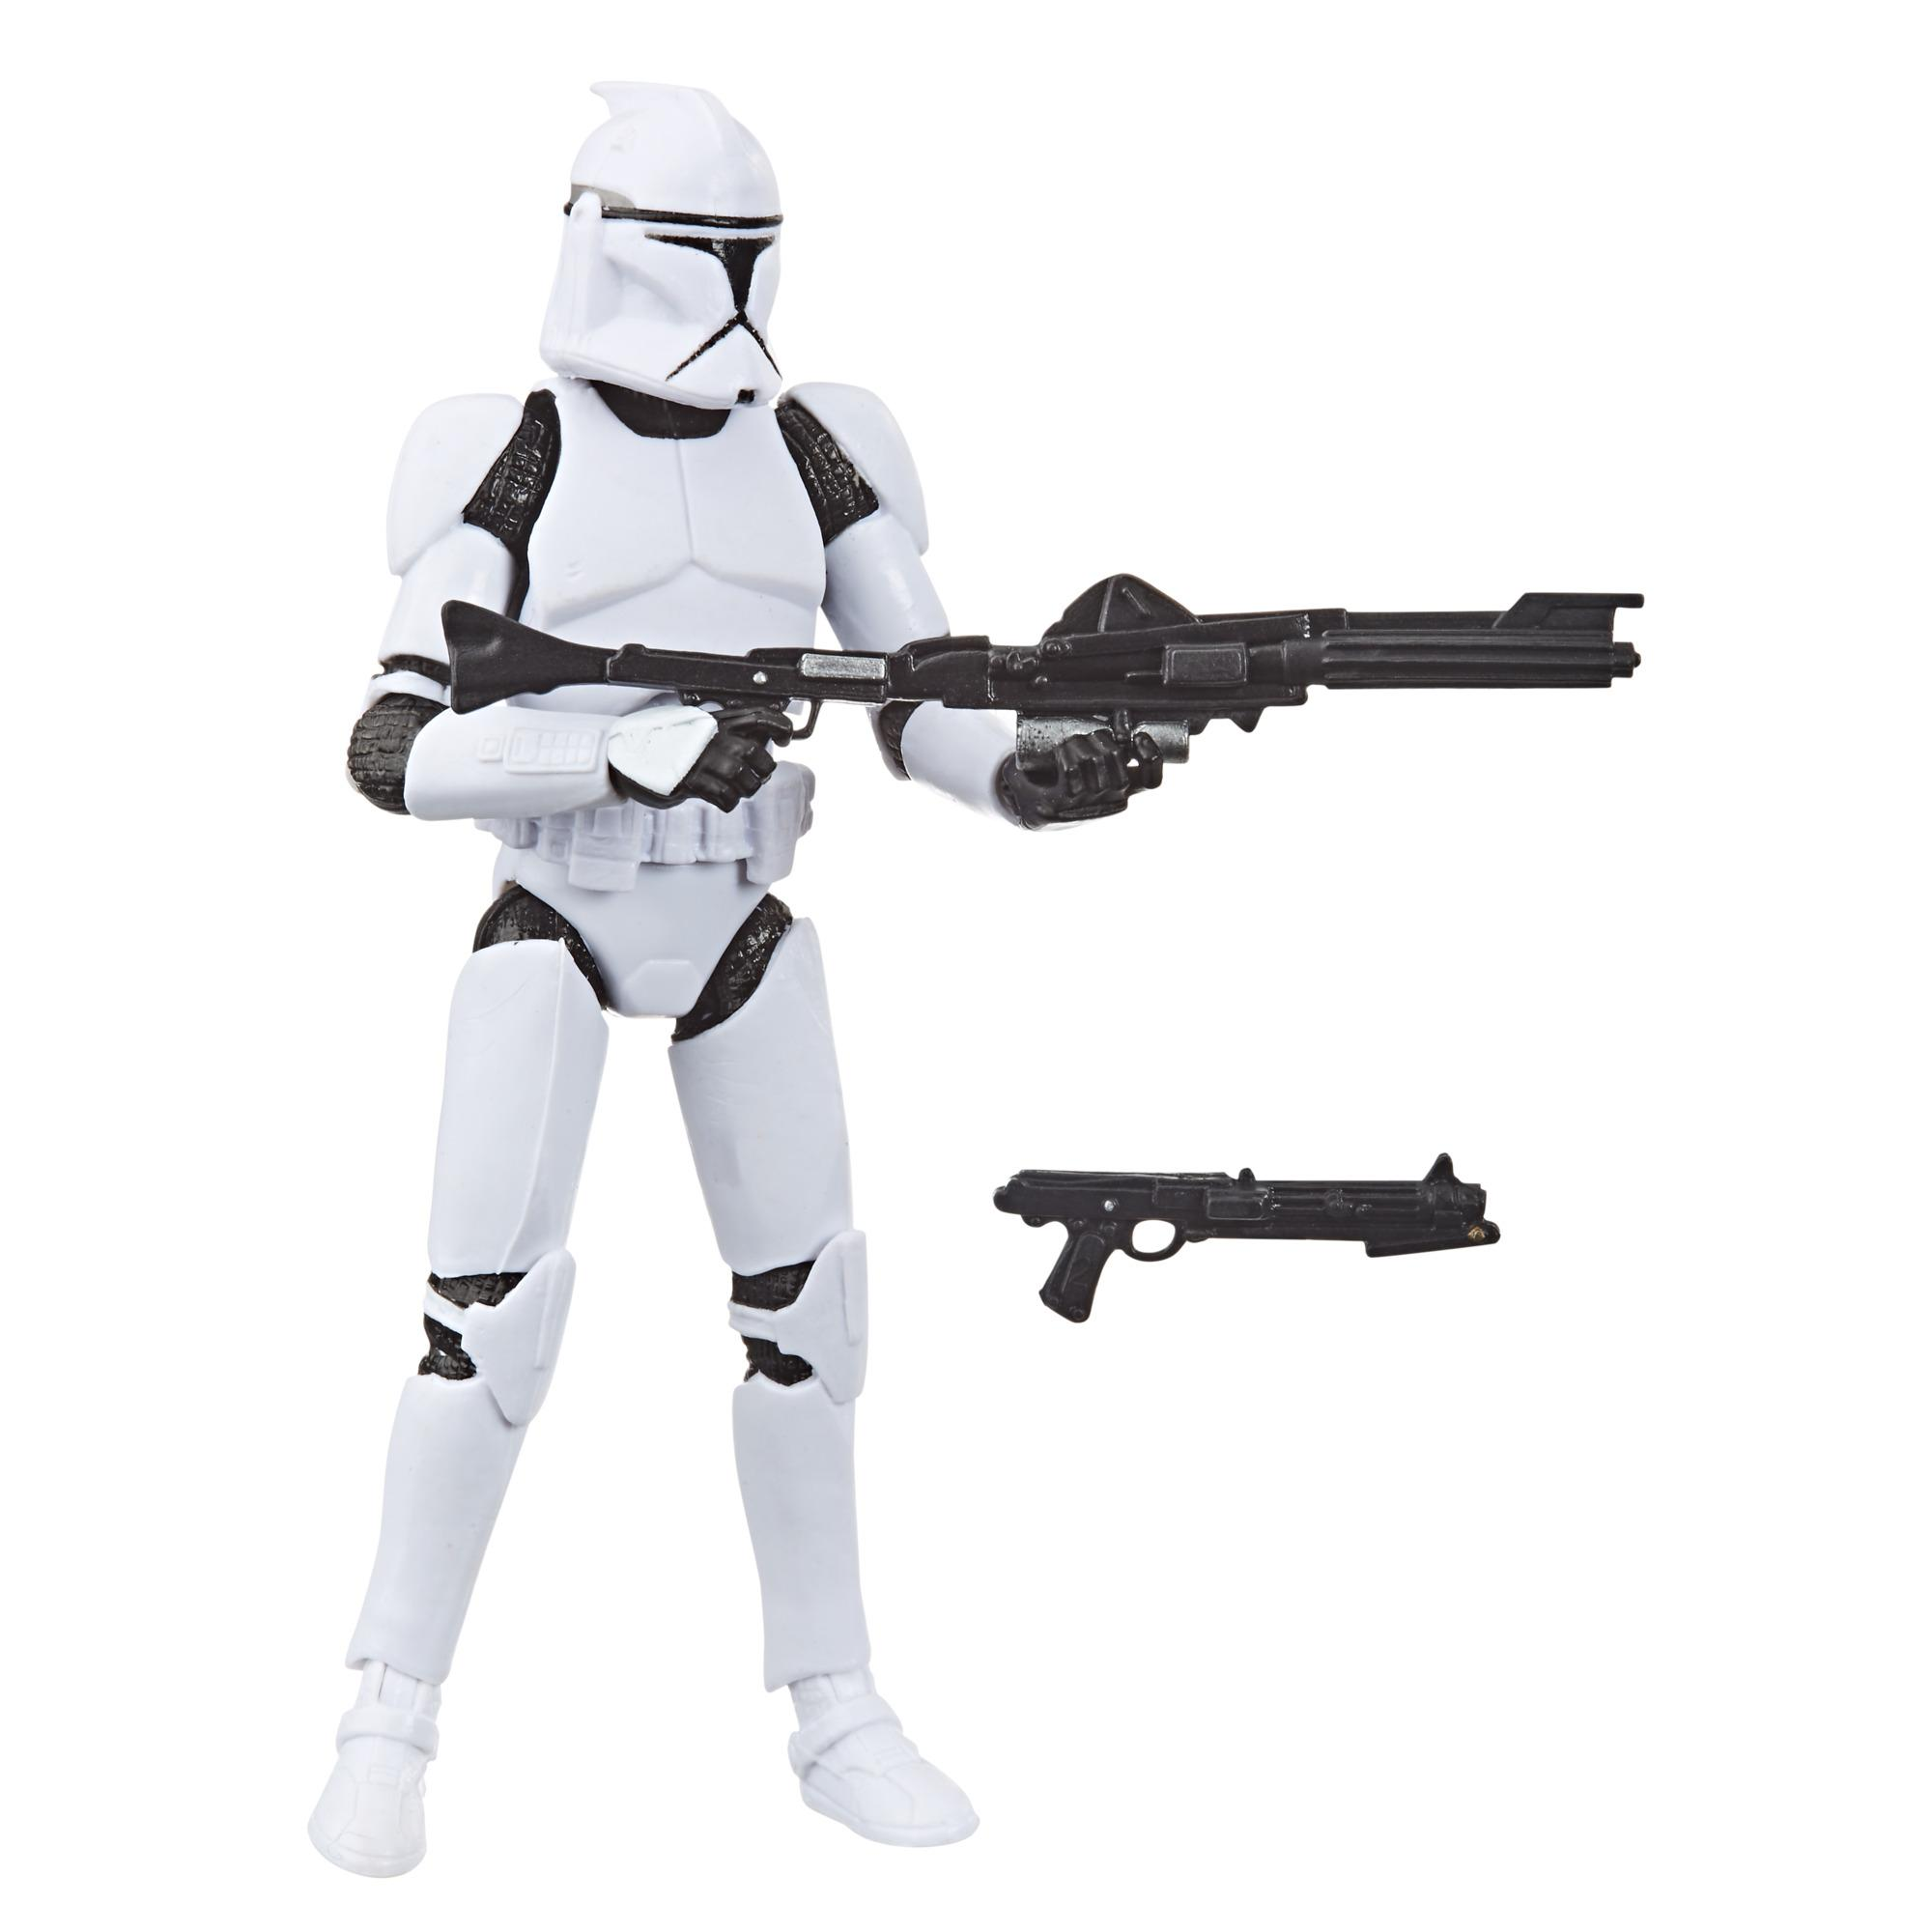 Star Wars The Vintage Collection Clone Trooper Toy, 3.75-inch Scale Star Wars: Attack of the Clones Figure